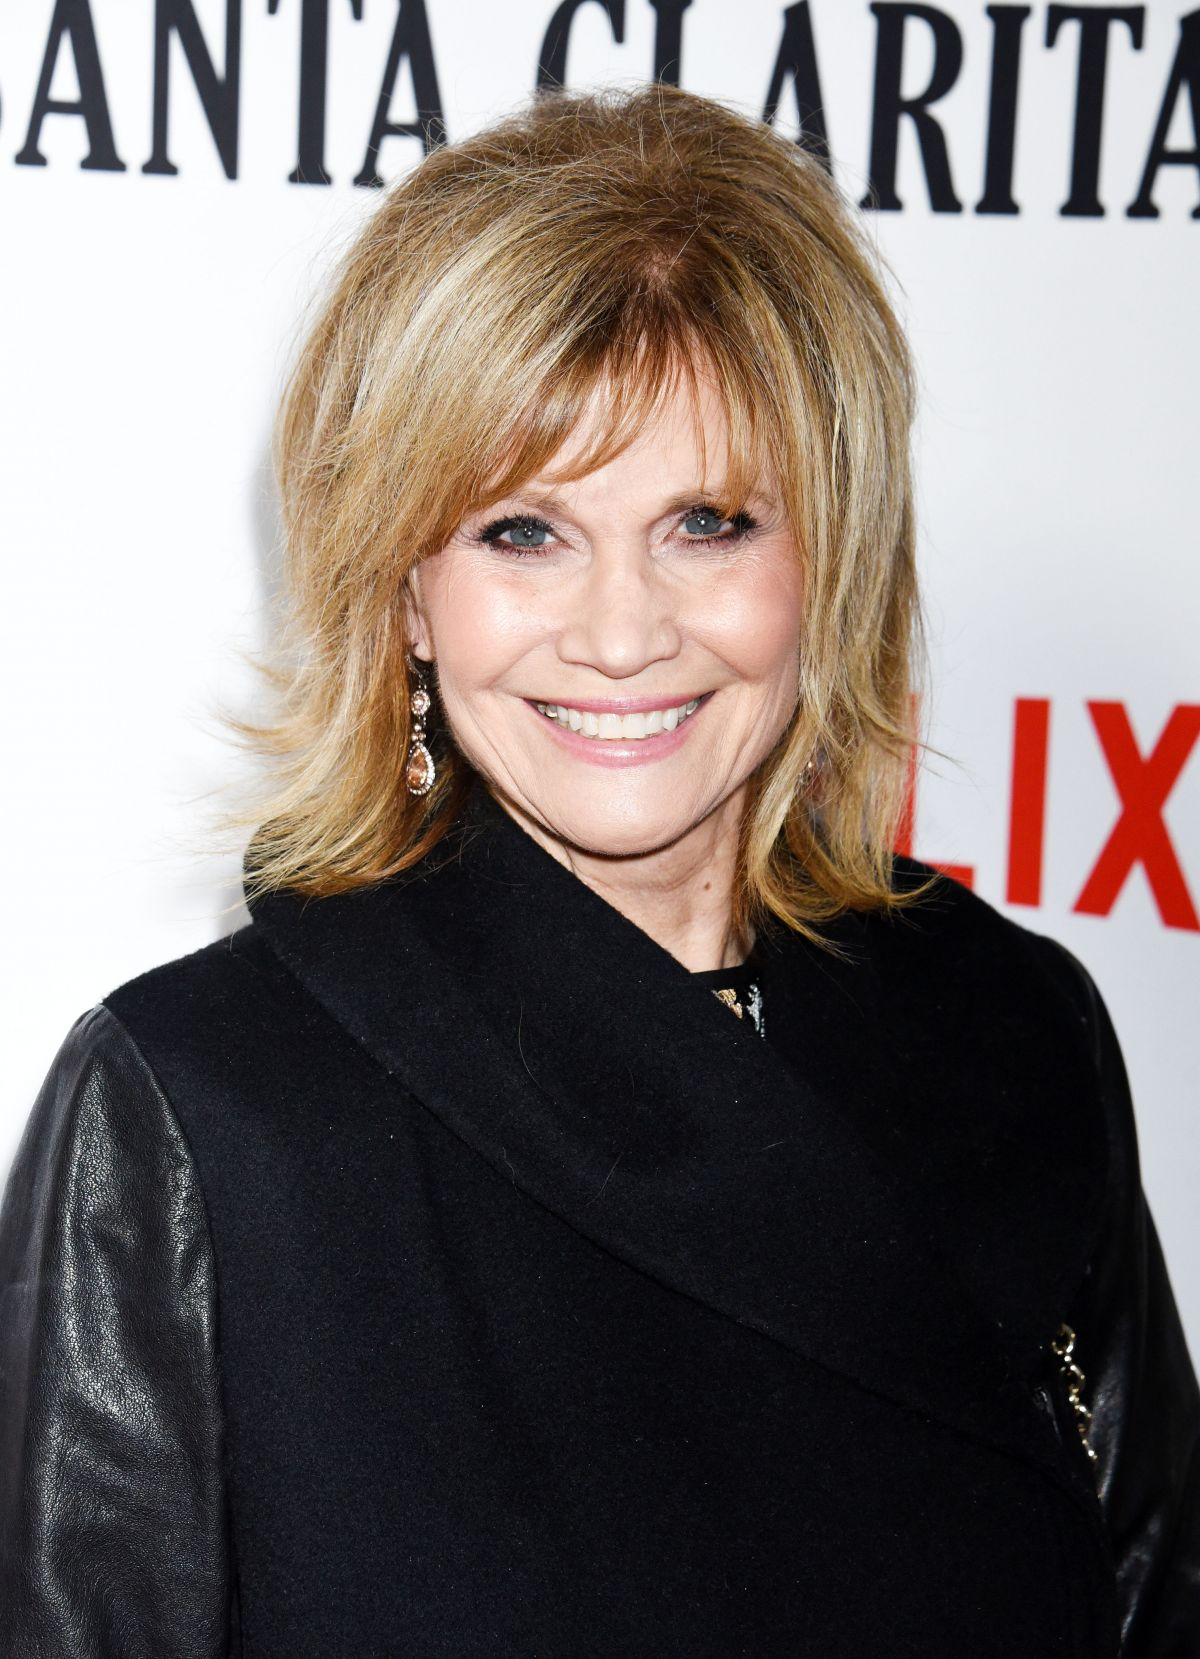 Markie Post Markie Post new images